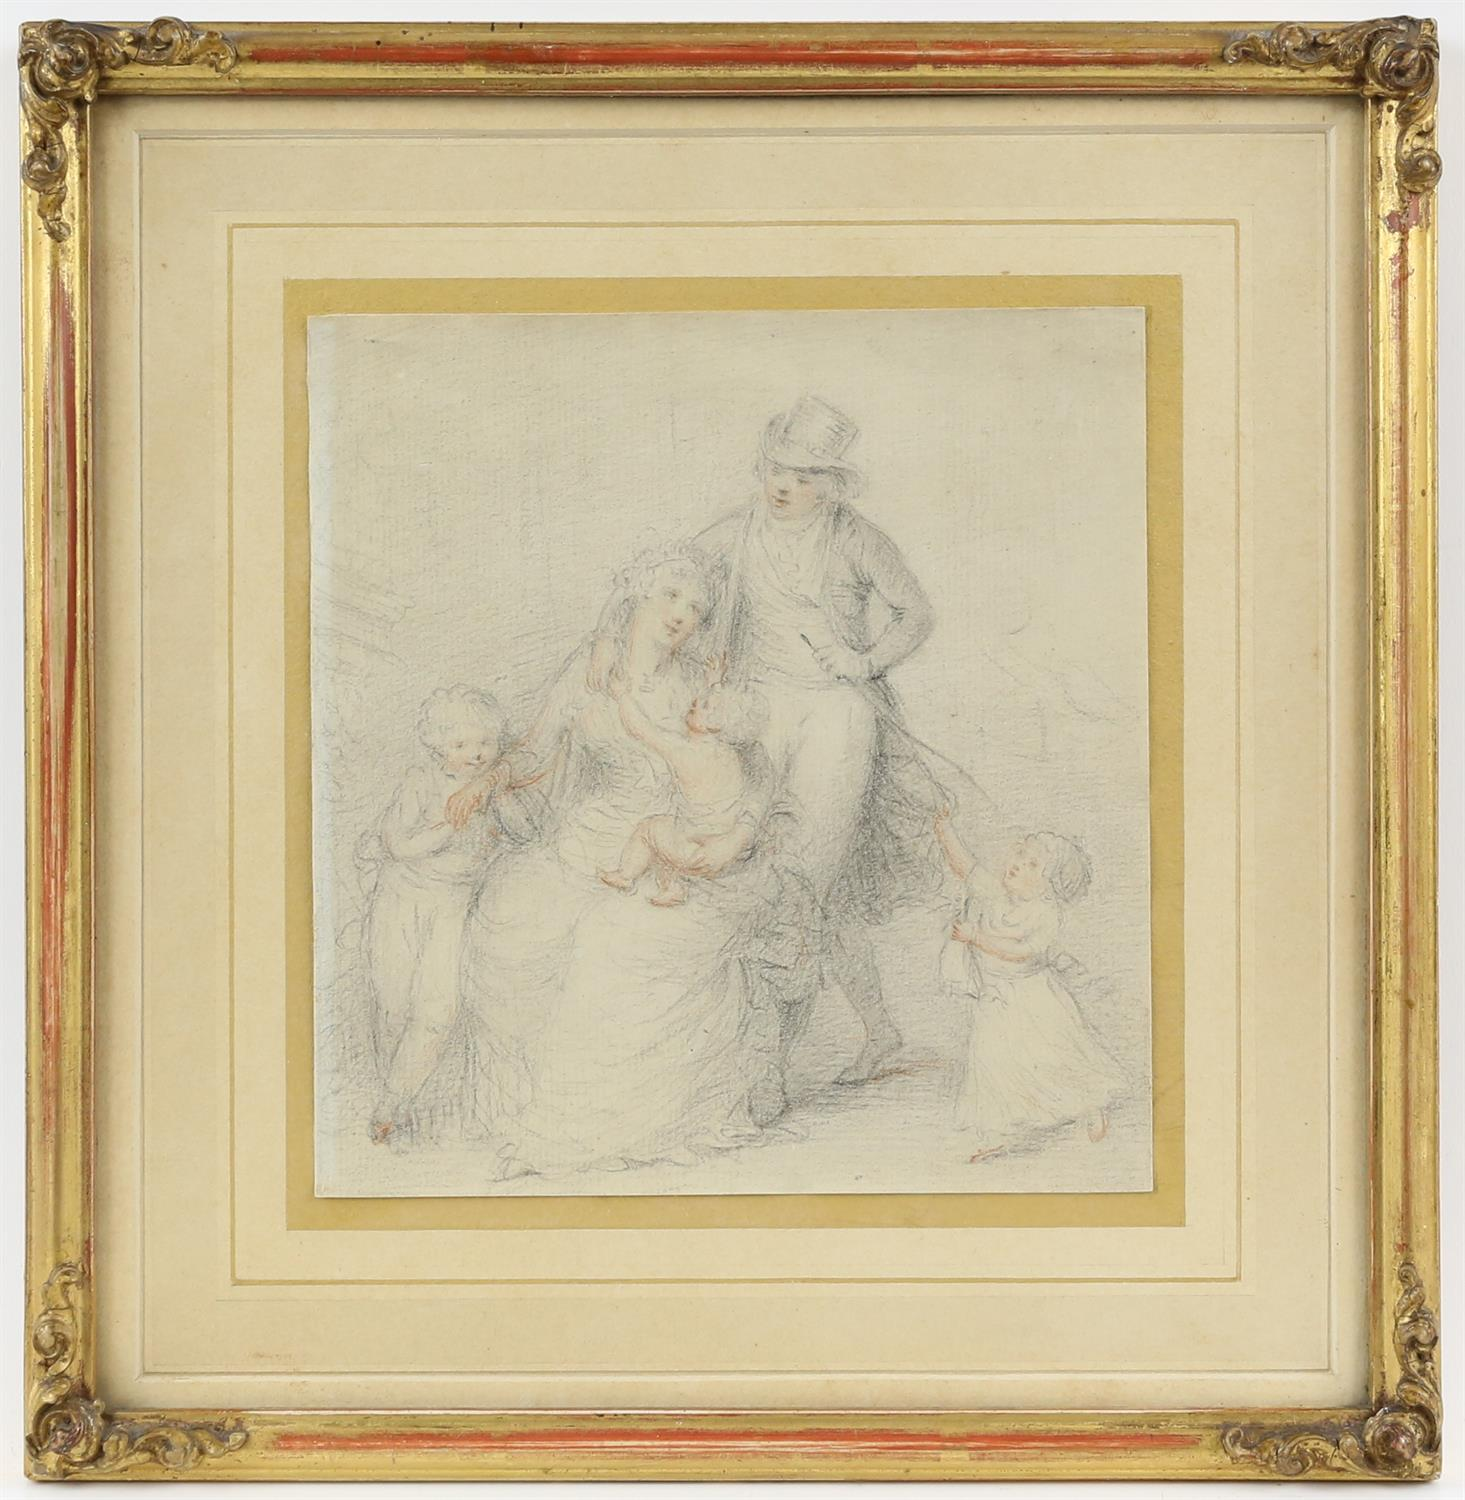 Peltro William Tompkins (British, 1760-1840), 'The Tompkins family', pencil and coloured chalk, - Image 2 of 3